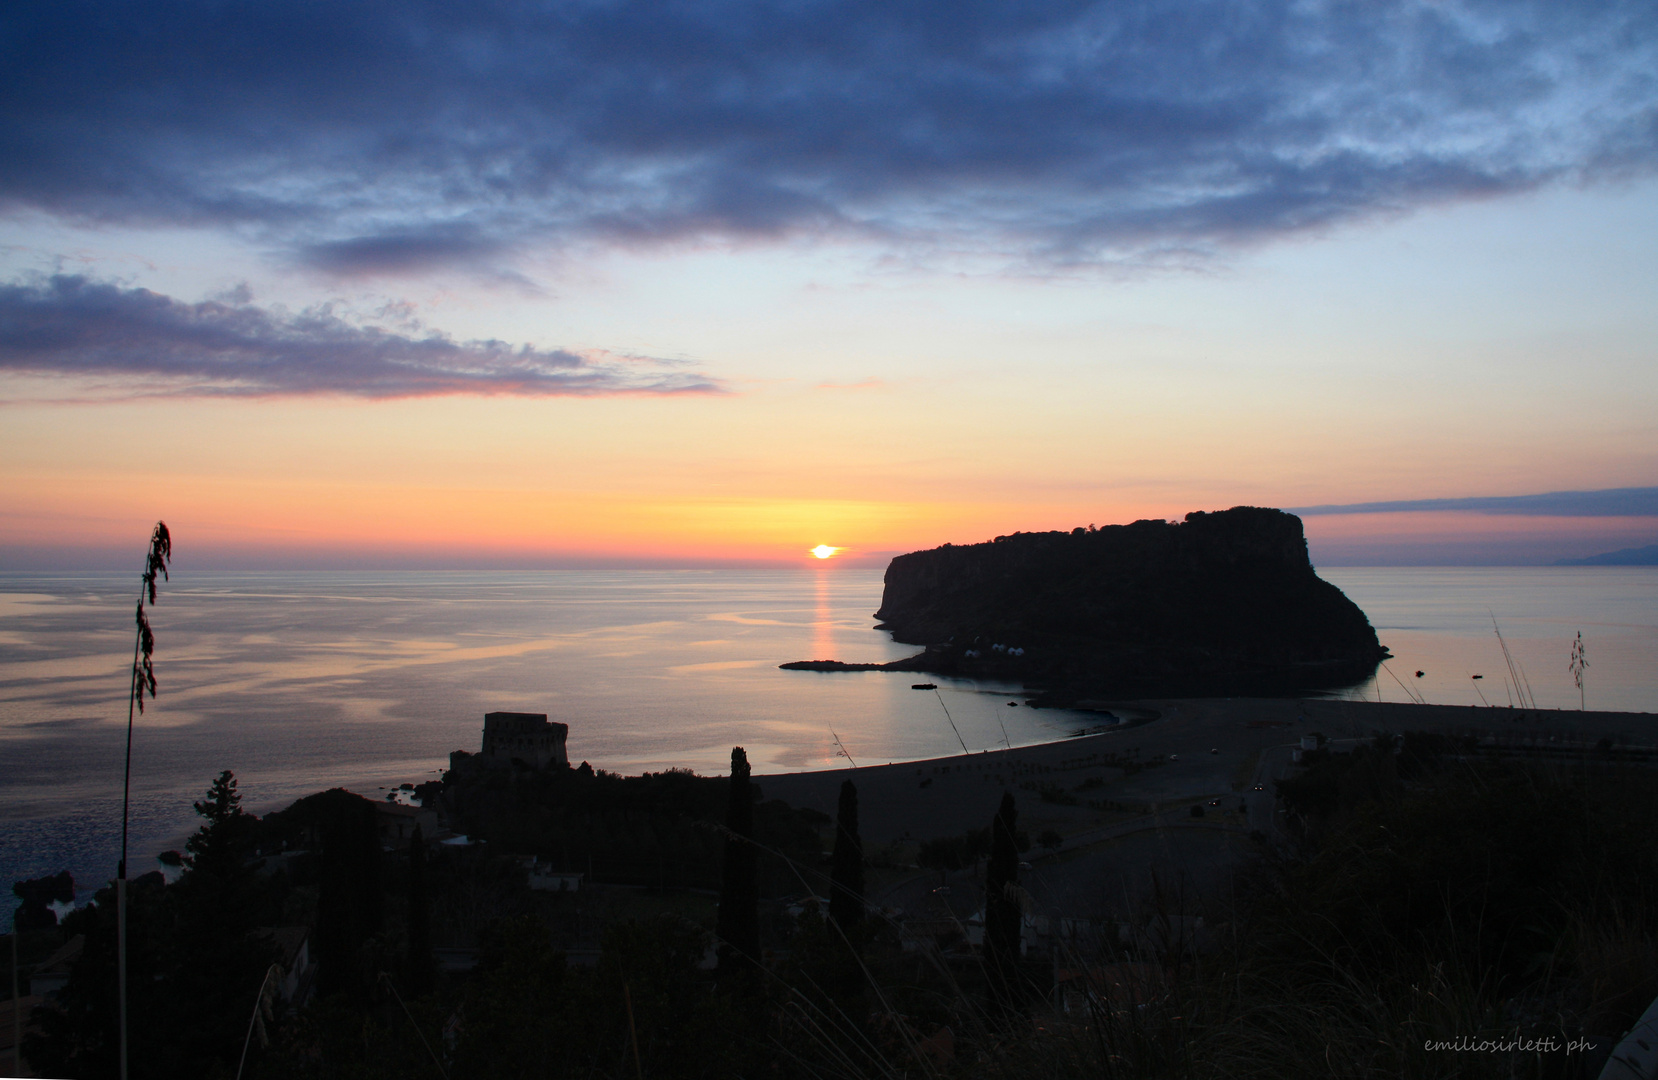 tramonto all'isola di dino - sunset at the island of Dino